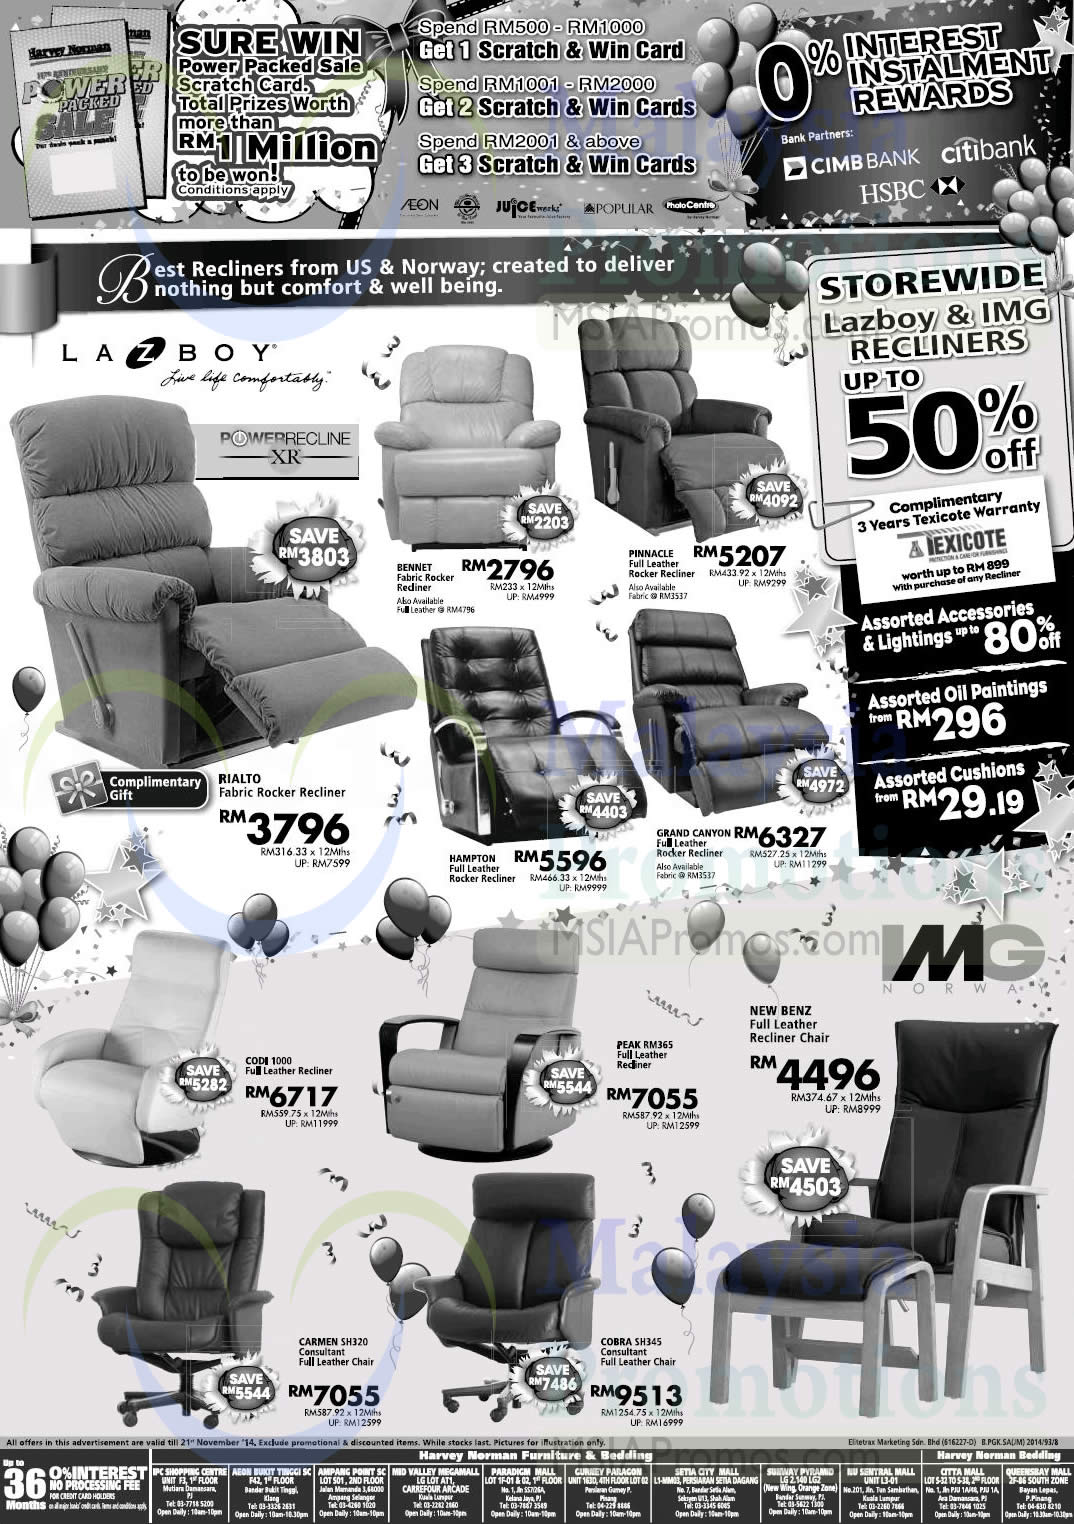 Recliners Chairs Lazboy IMG & Recliners Chairs Lazboy IMG » Harvey Norman Digital Cameras ... islam-shia.org